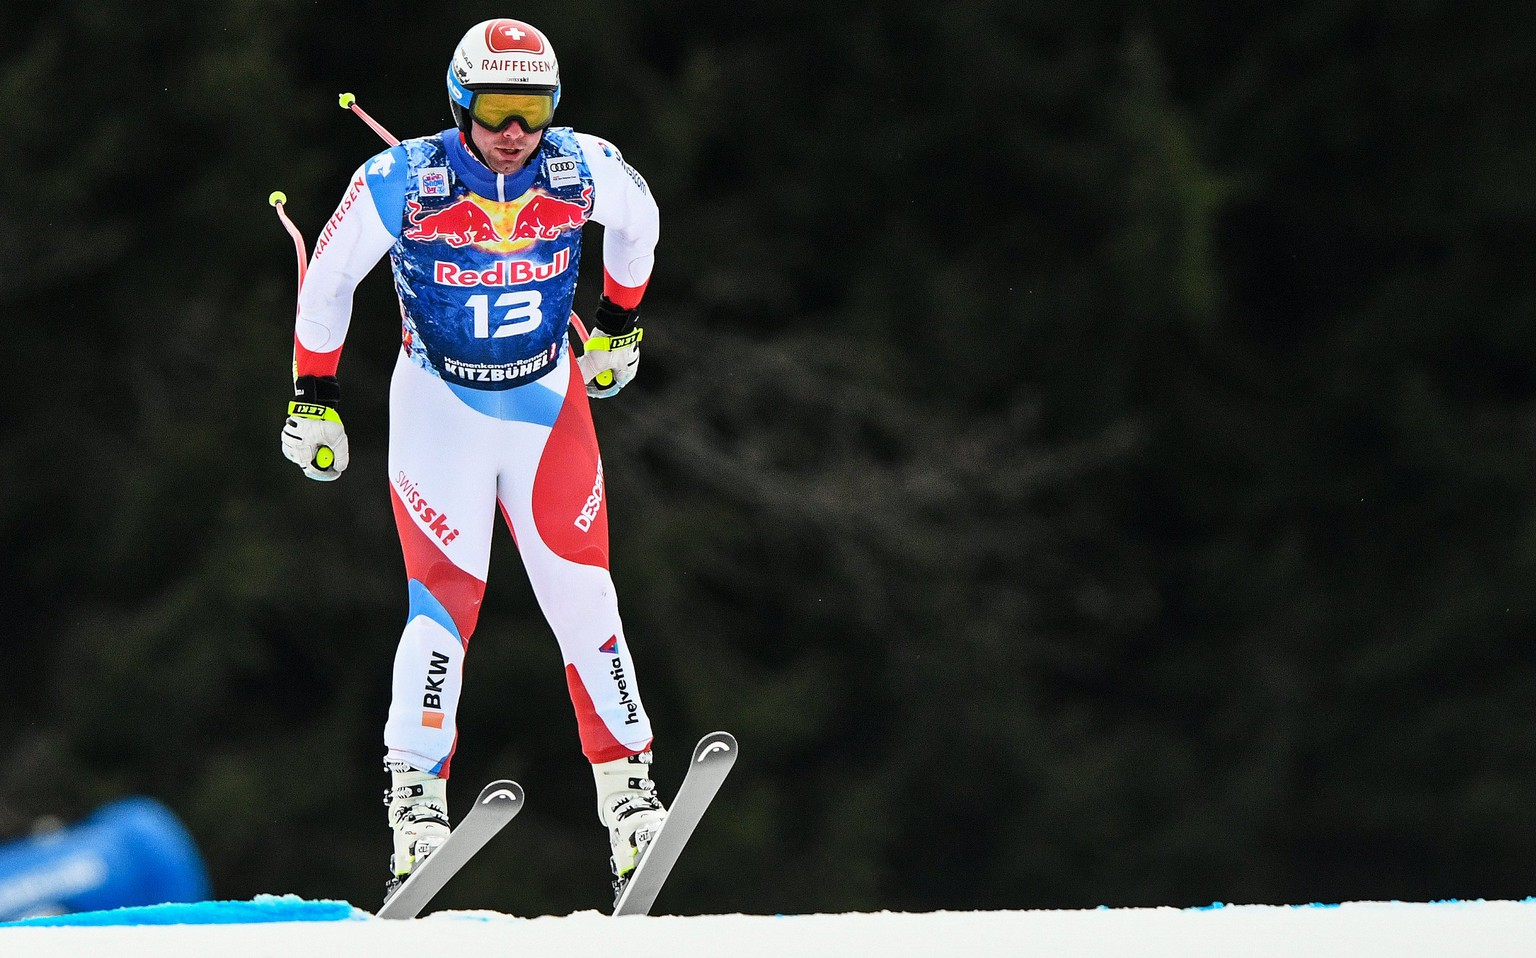 epa06443111 Beat Feuz of Switzerland takes a jump during the first training run for the Men's Downhill race of the FIS Alpine Skiing World Cup event in Kitzbuehel, Austria, 16 January 2018.  EPA/CHRISTIAN BRUNA